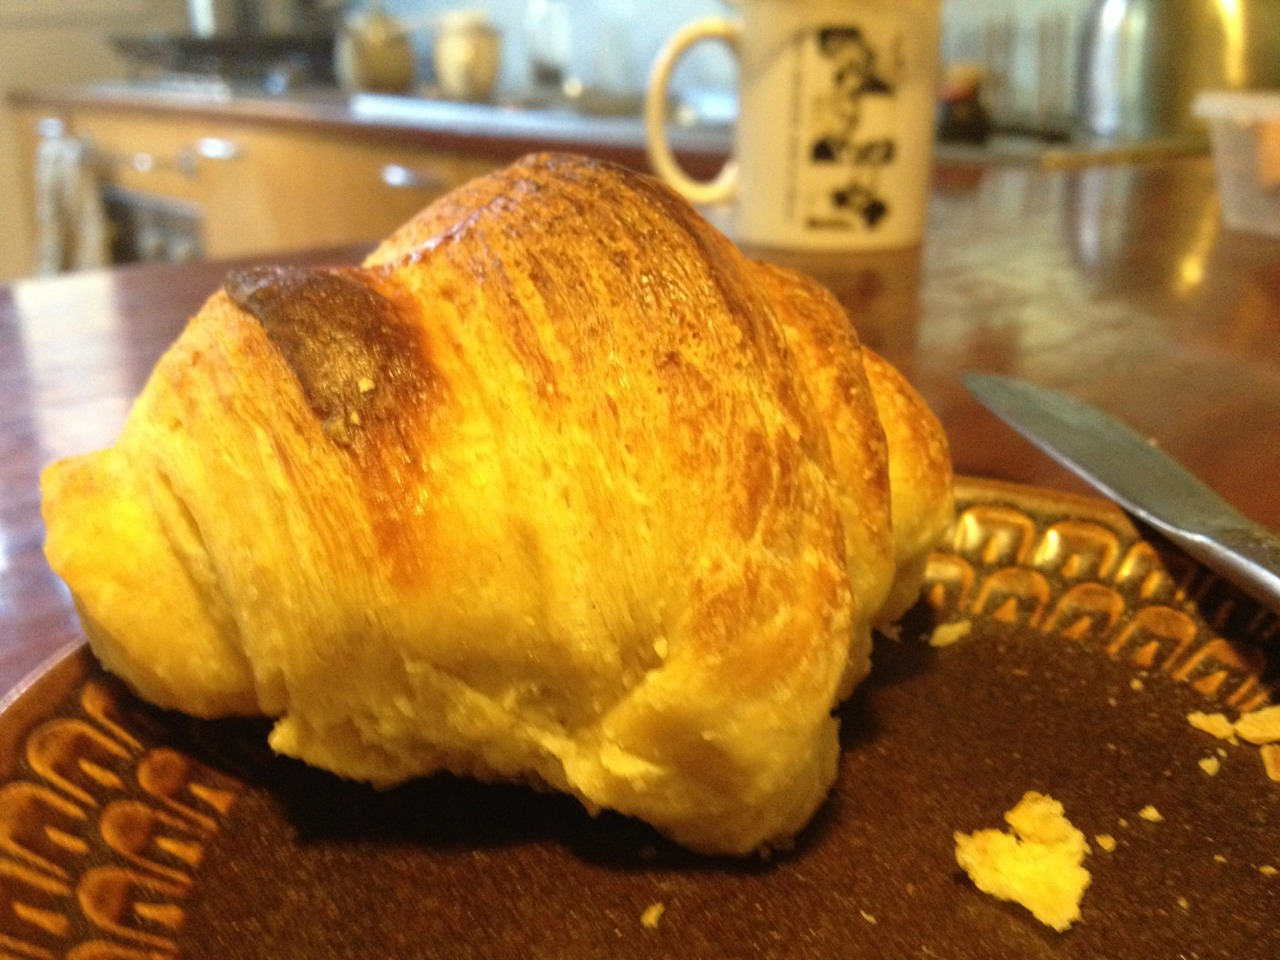 Biggest downside of making croissants at home is how difficult they are not to eat.